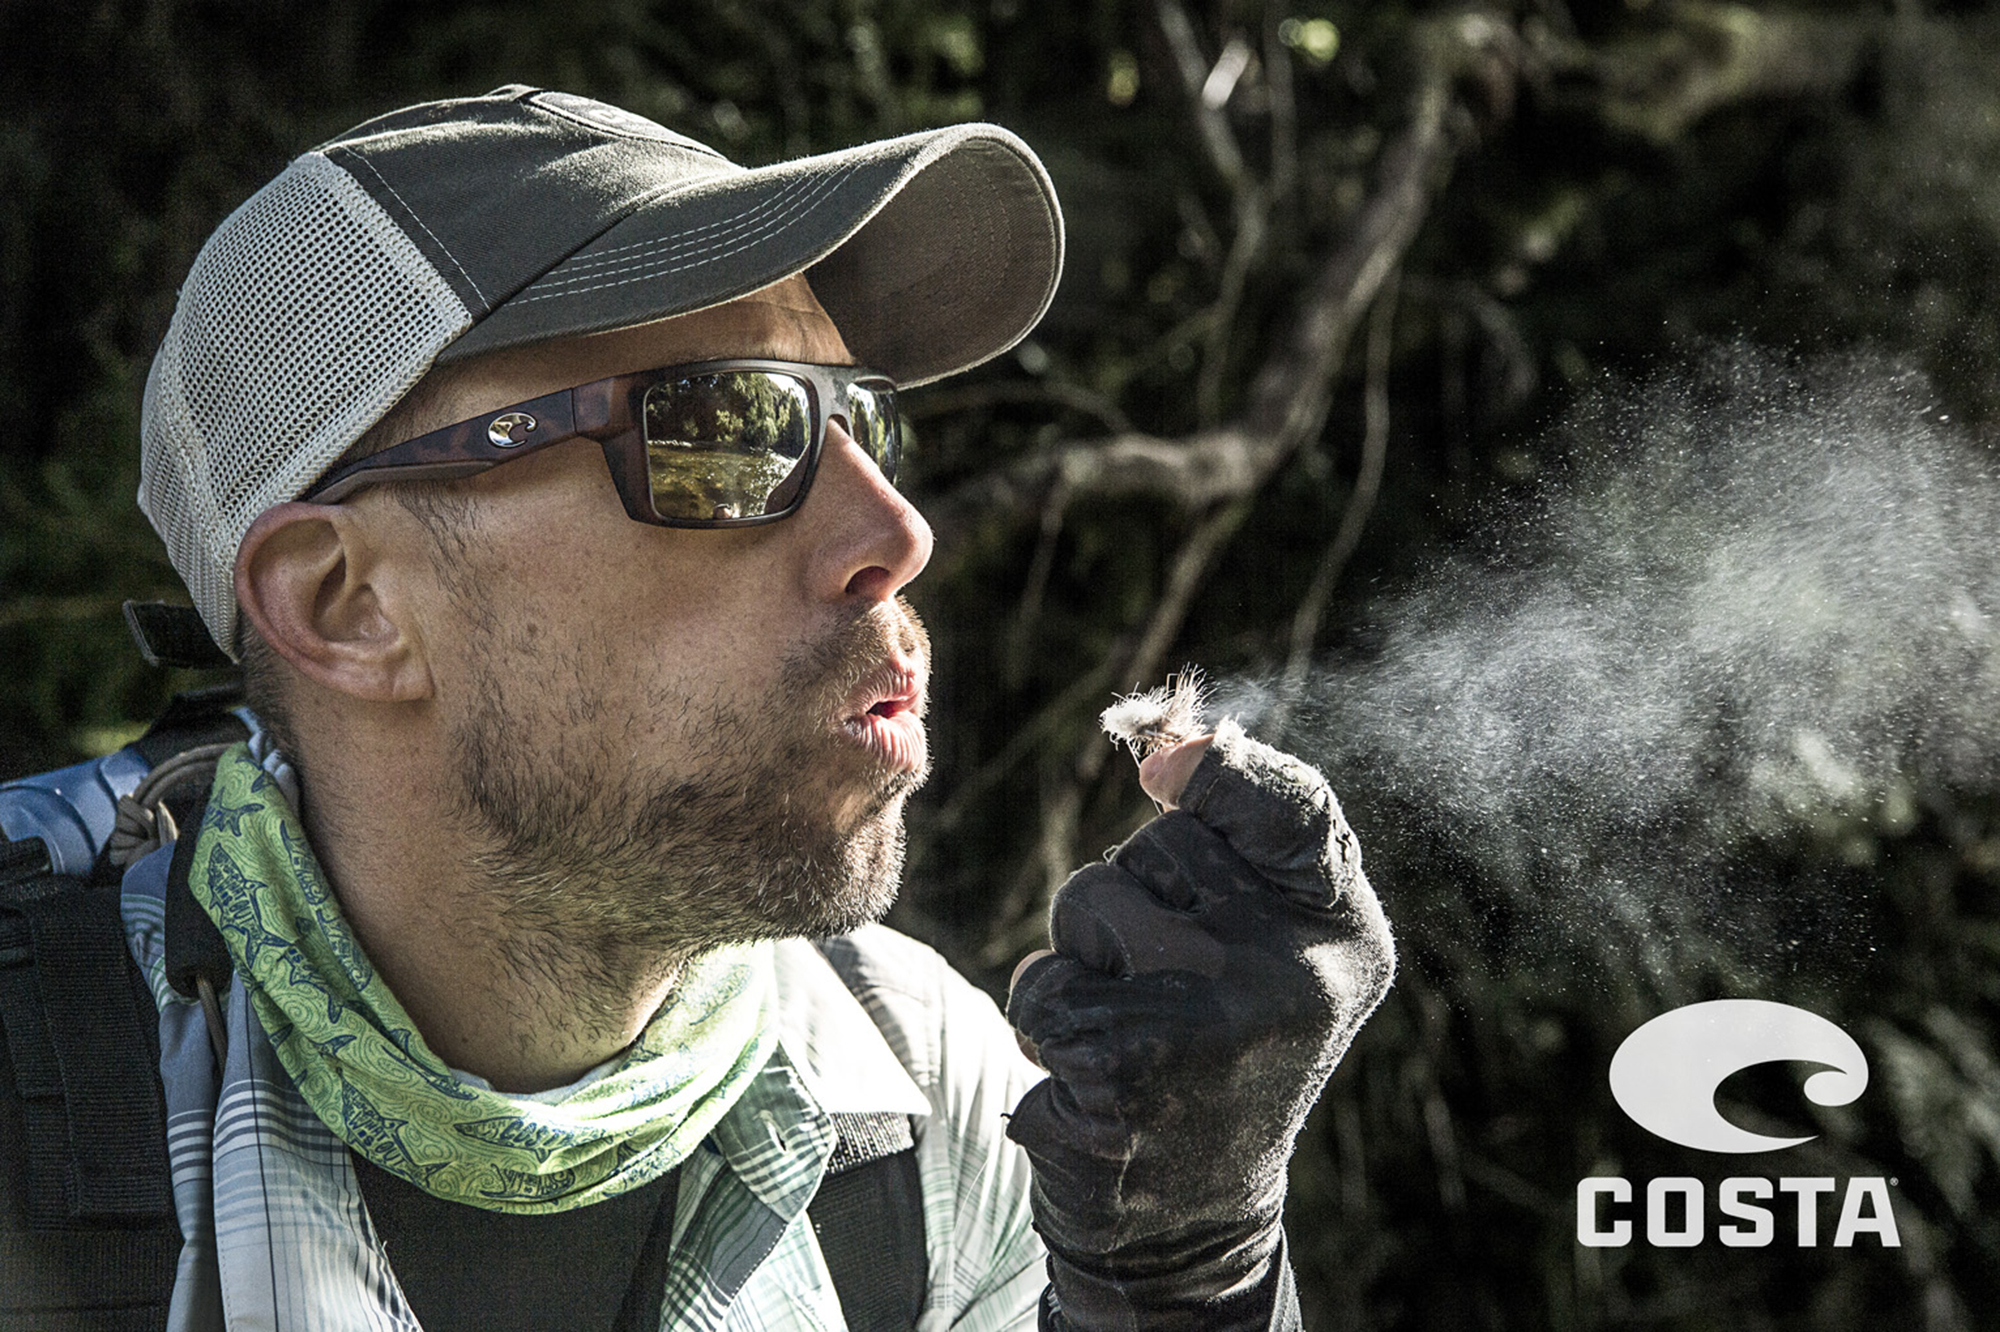 High-protection eyewear for high impact wear and tear